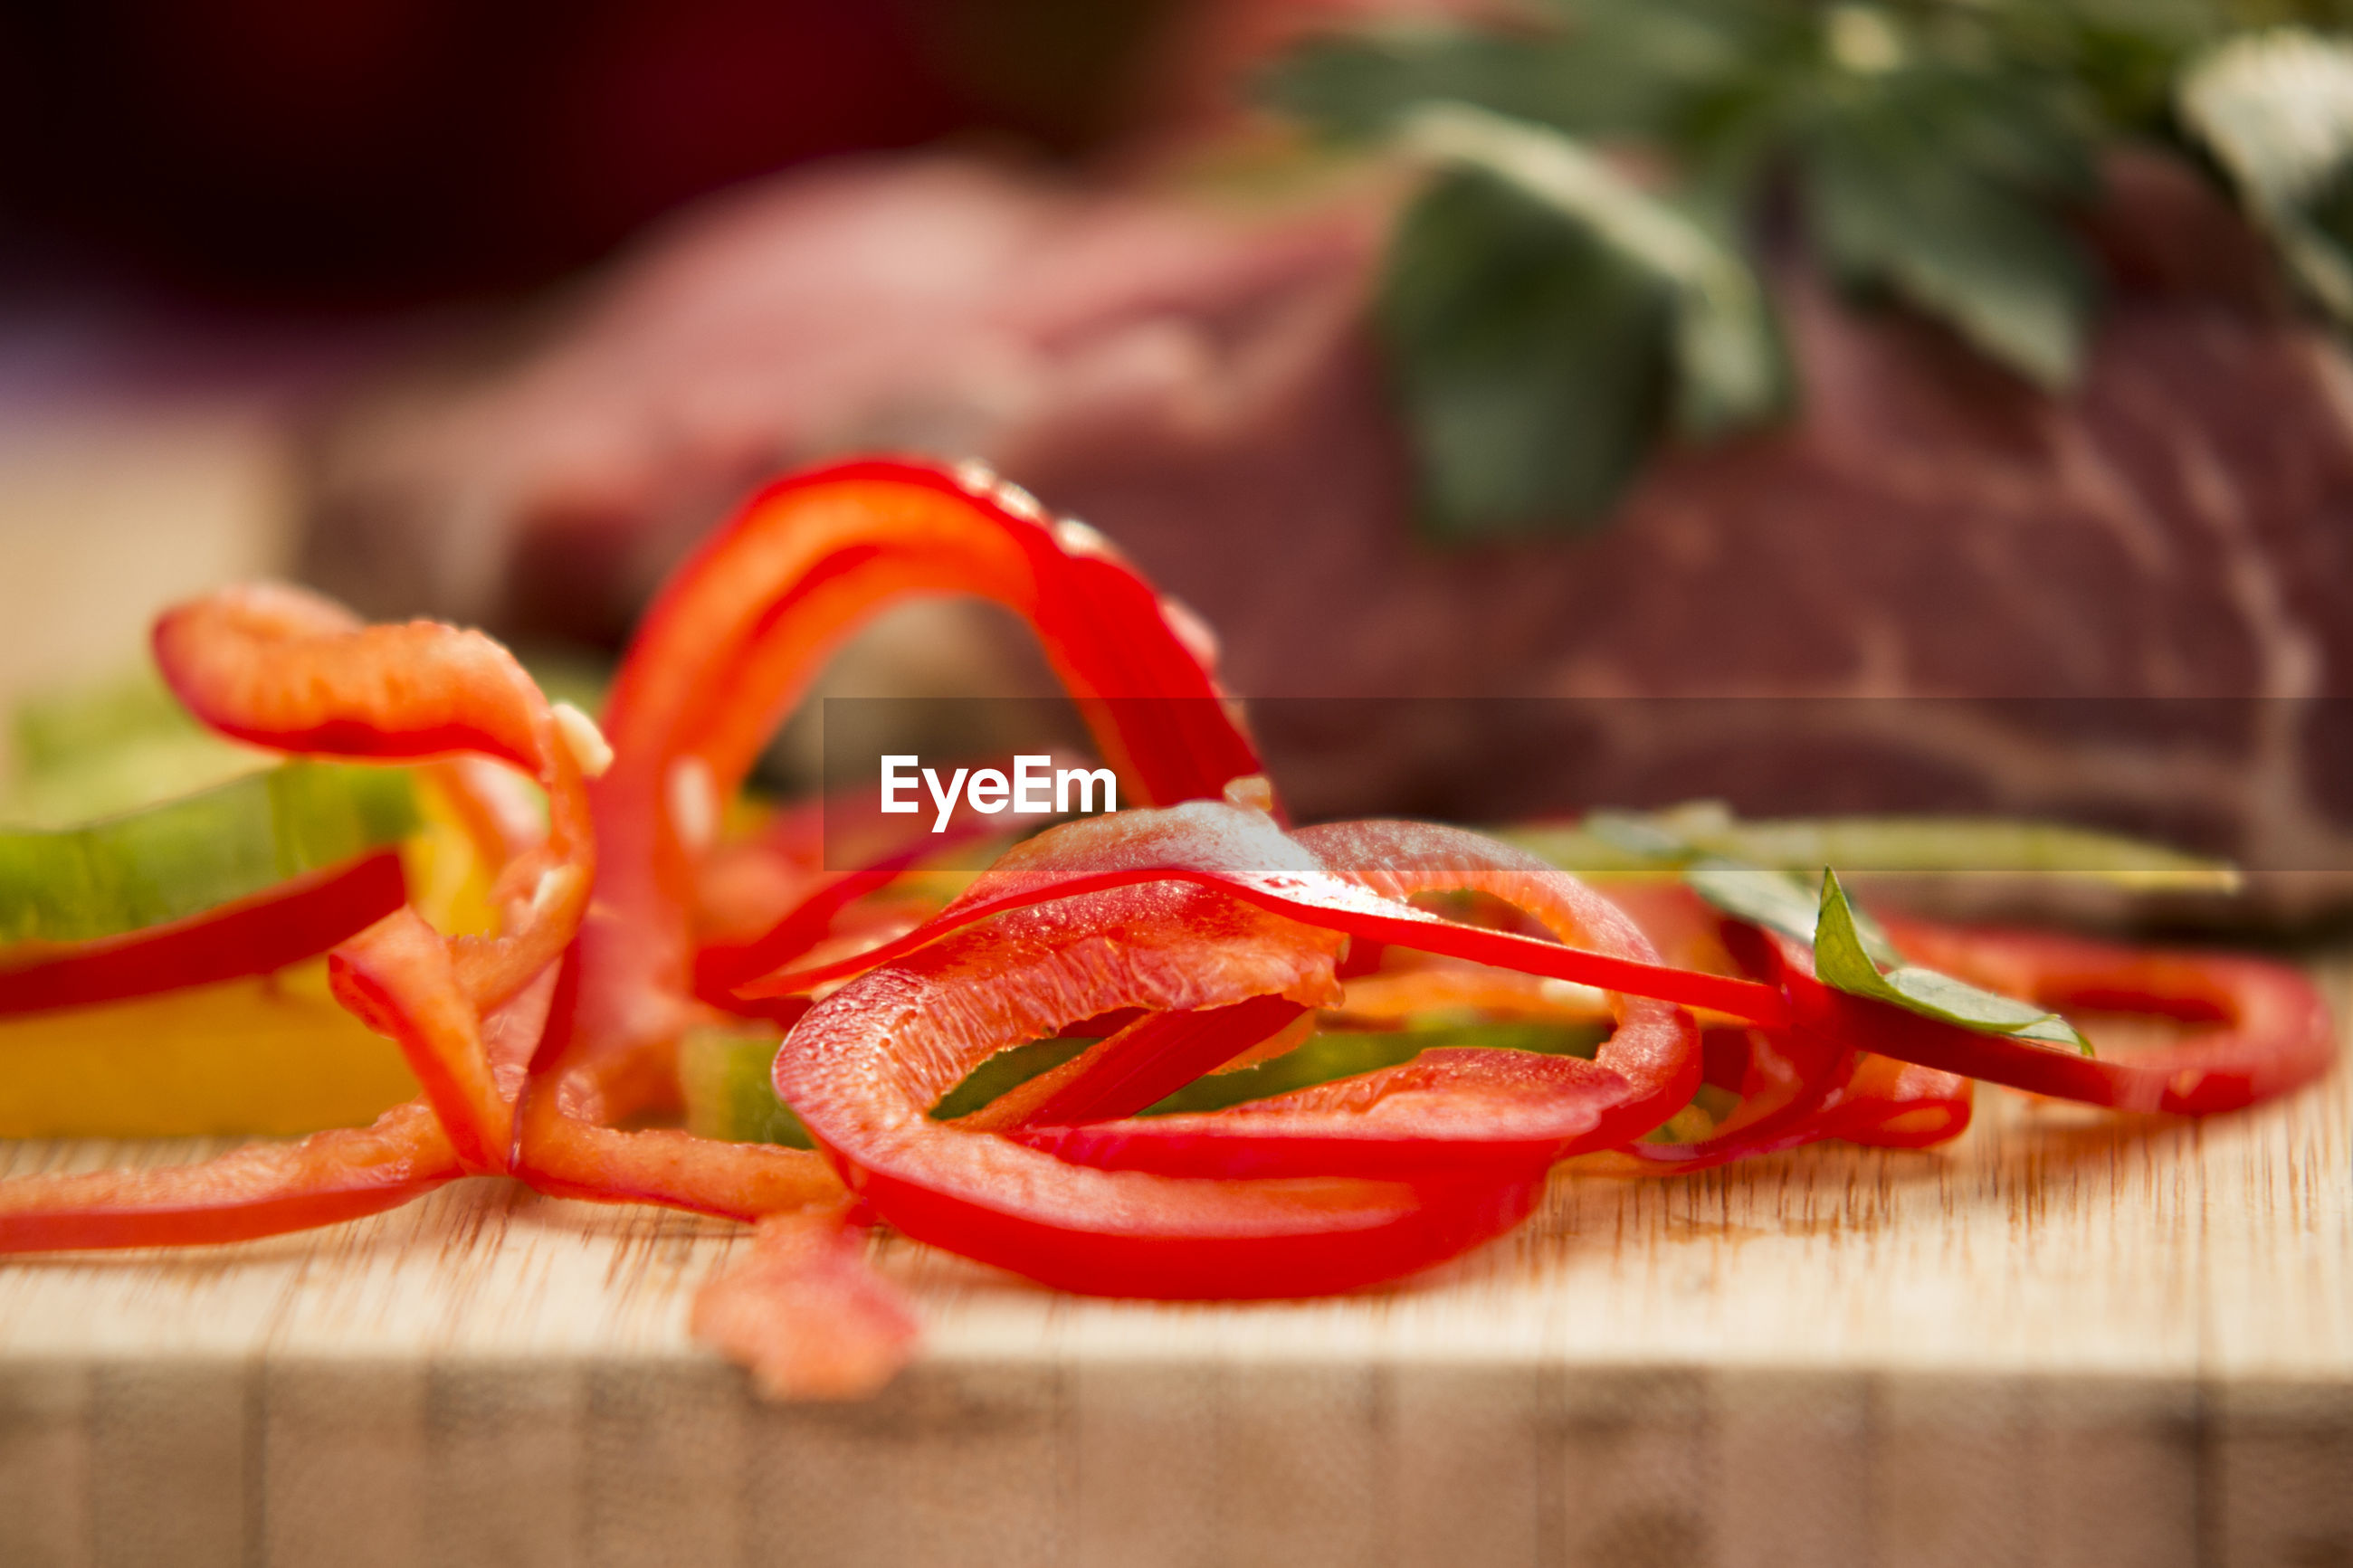 Close-up of red bell pepper on cutting board